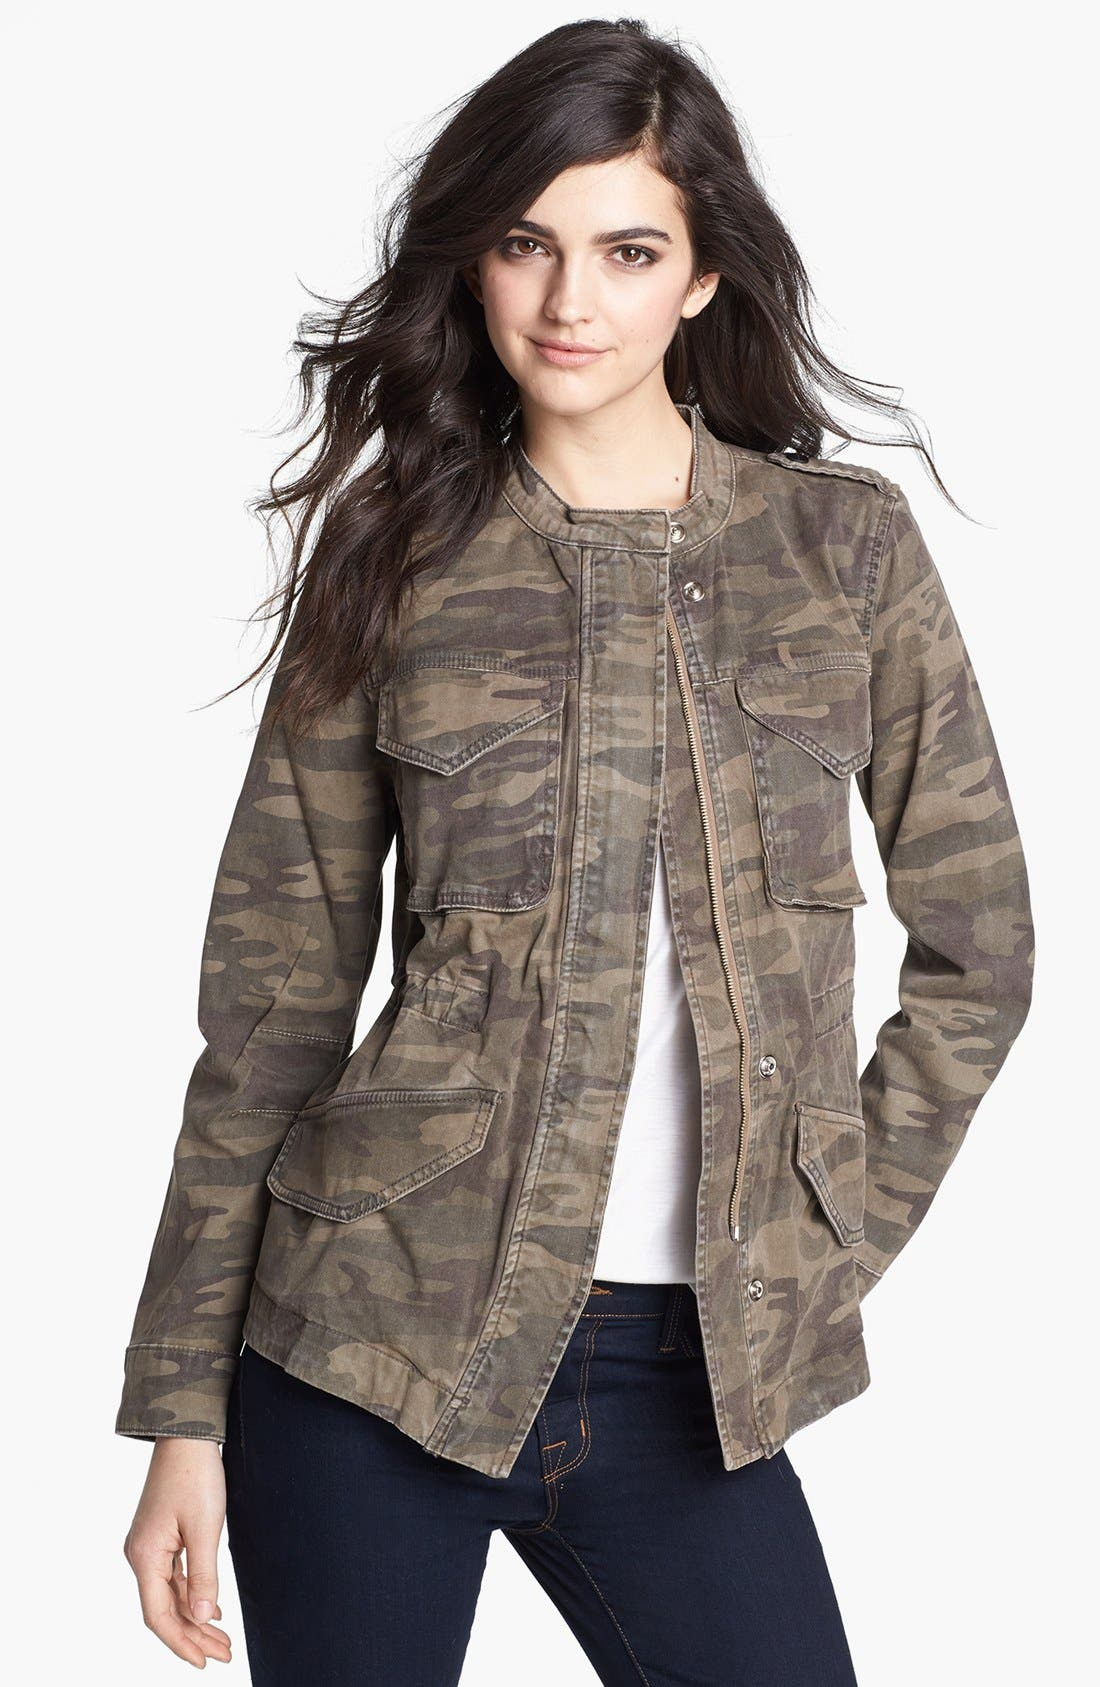 Camouflage Print Jacket,                             Main thumbnail 1, color,                             278